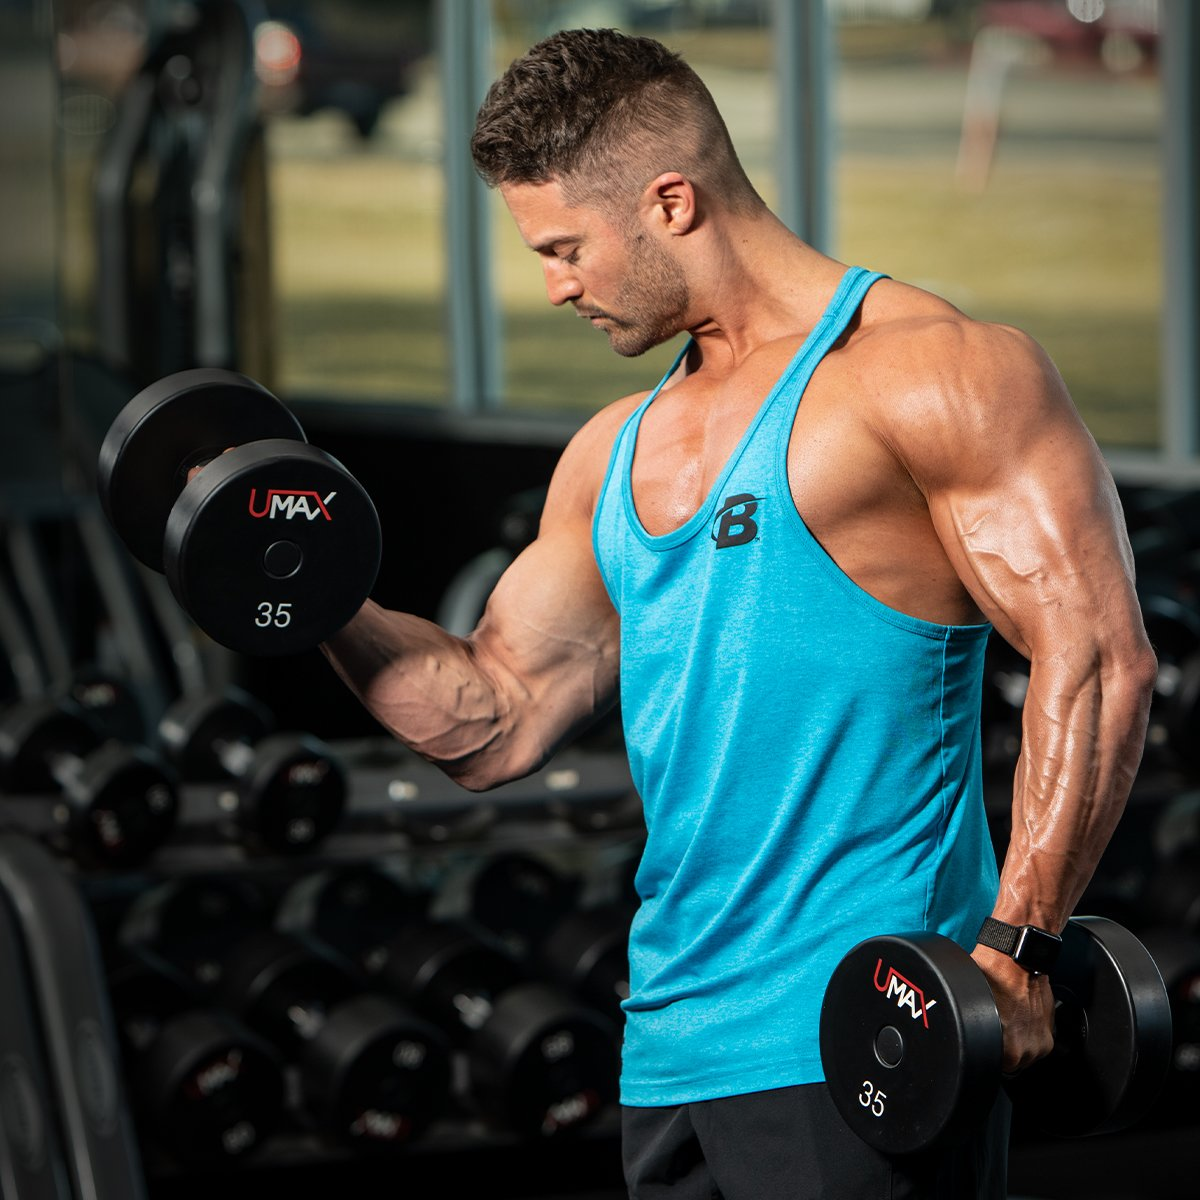 Get Swole and Strong!